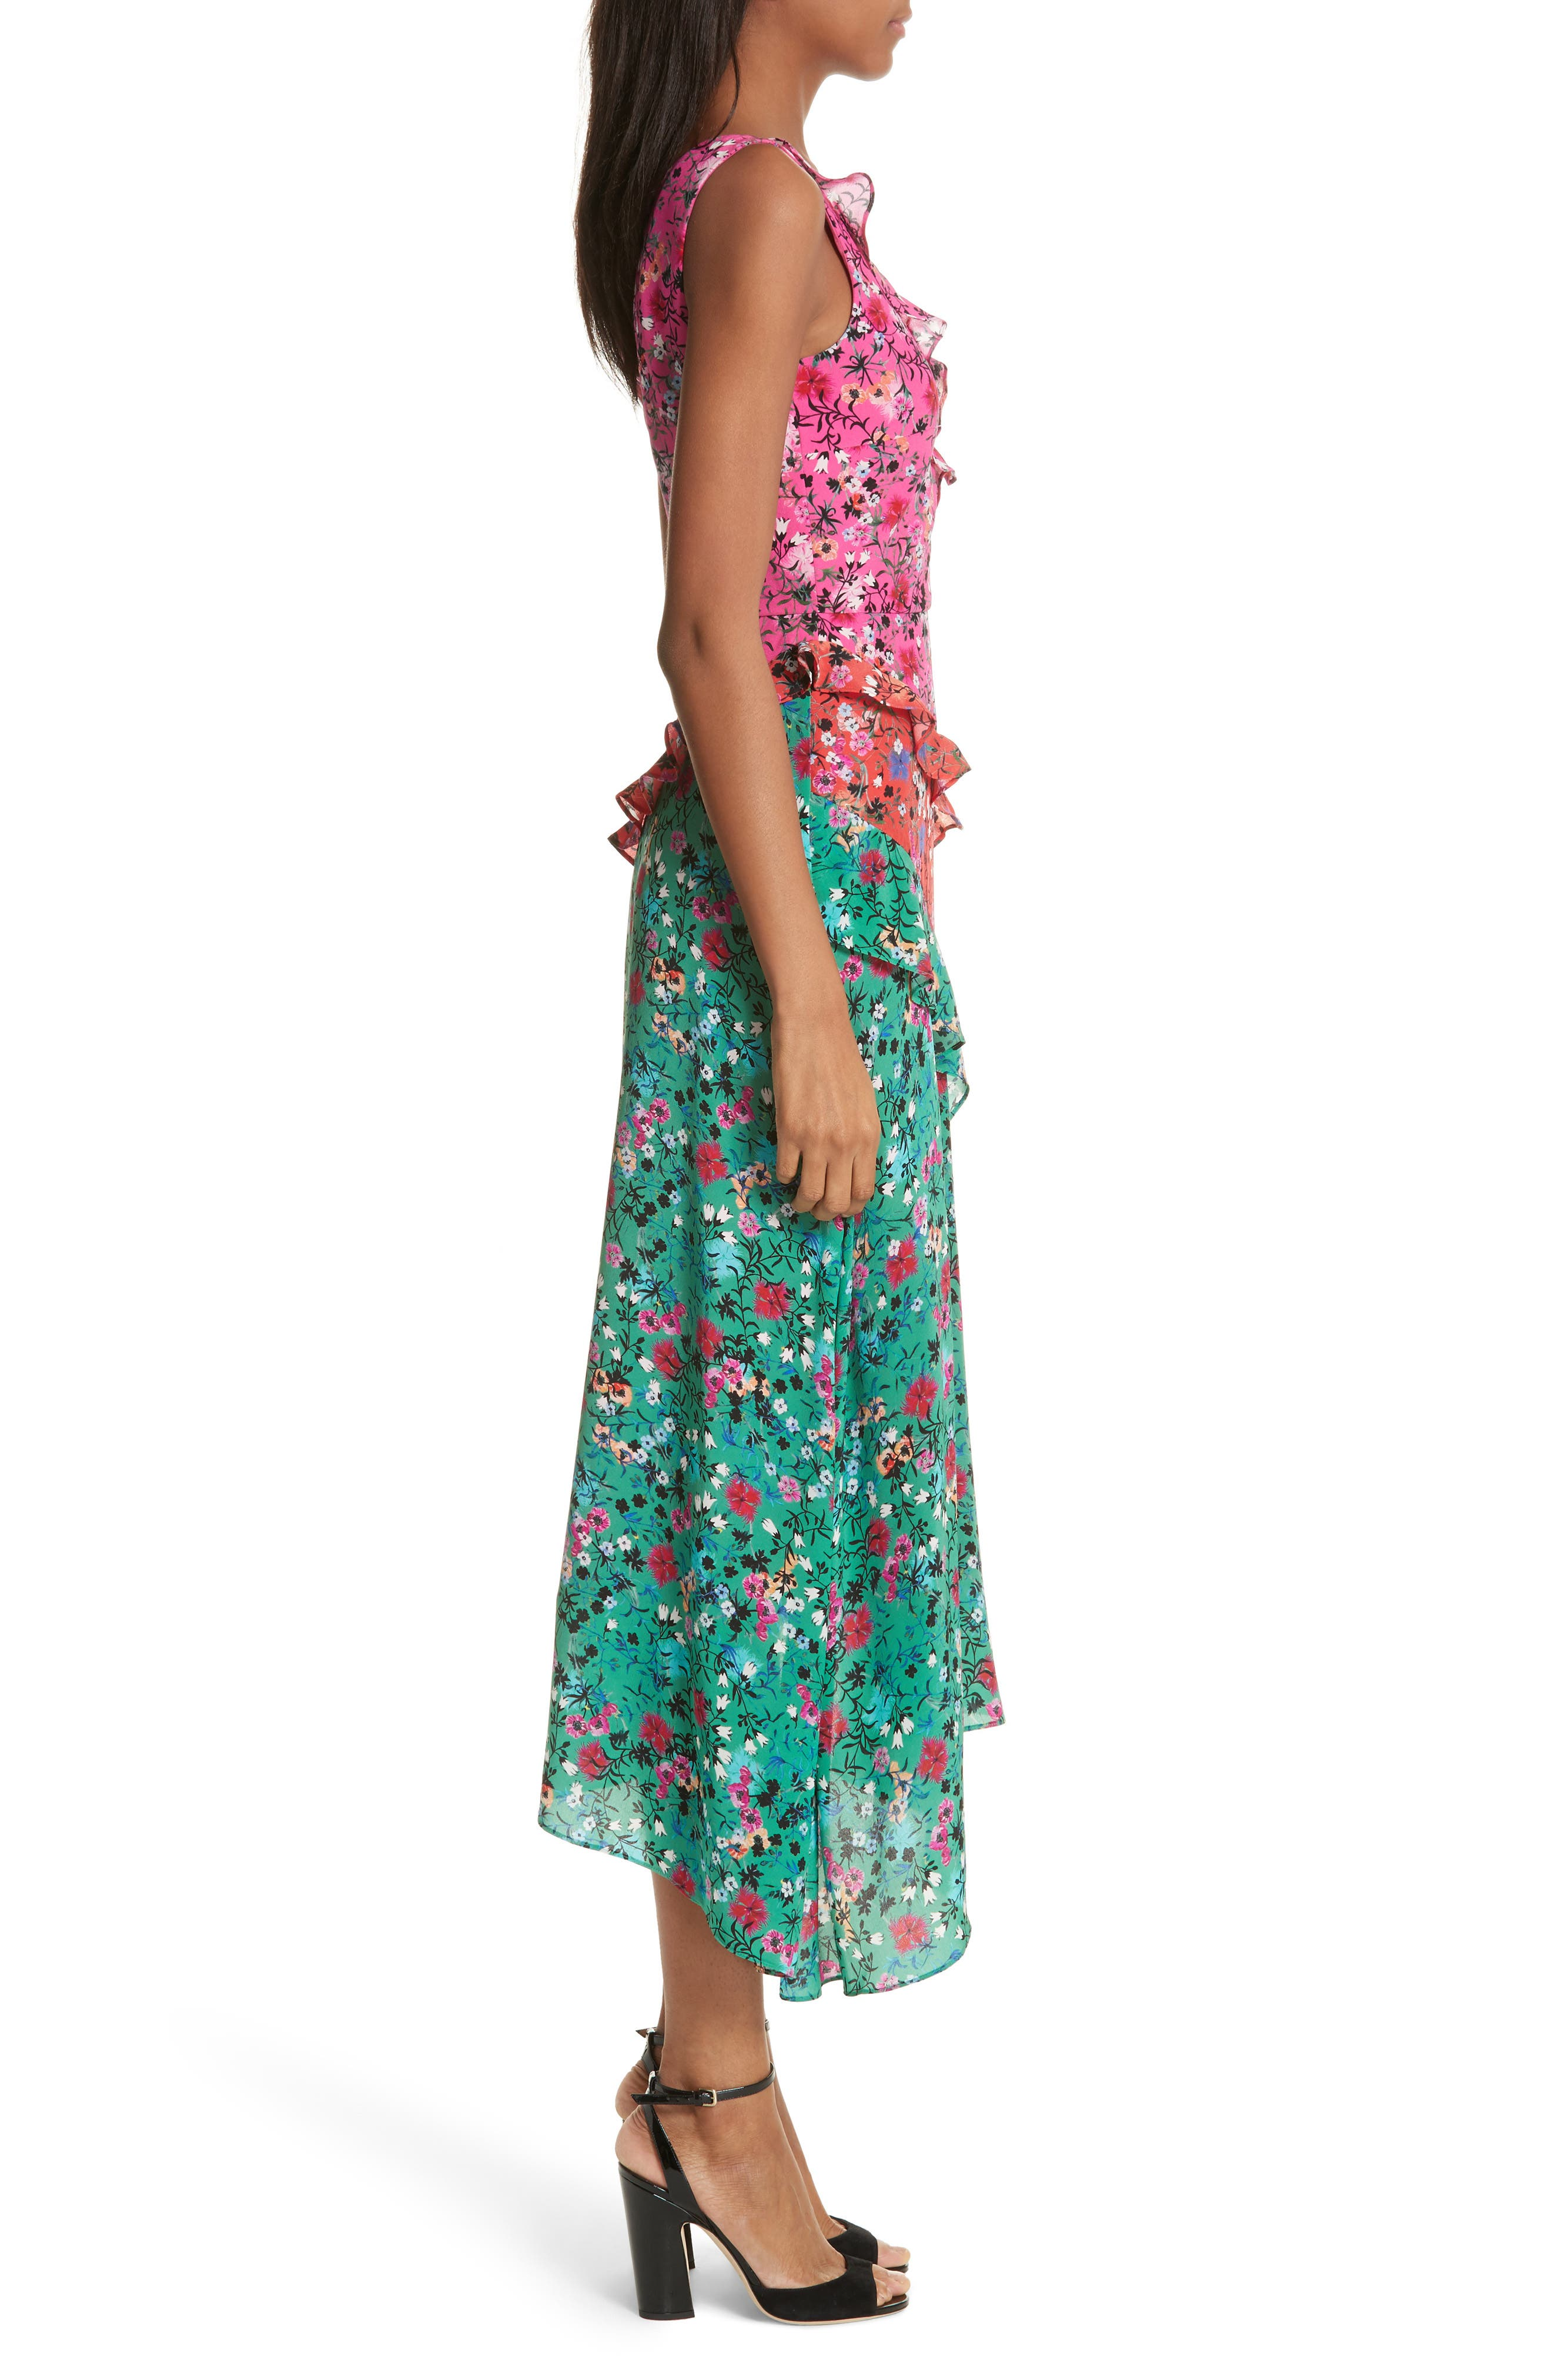 Aggie Floral Print Silk Dress,                             Alternate thumbnail 3, color,                             Pink Meadow